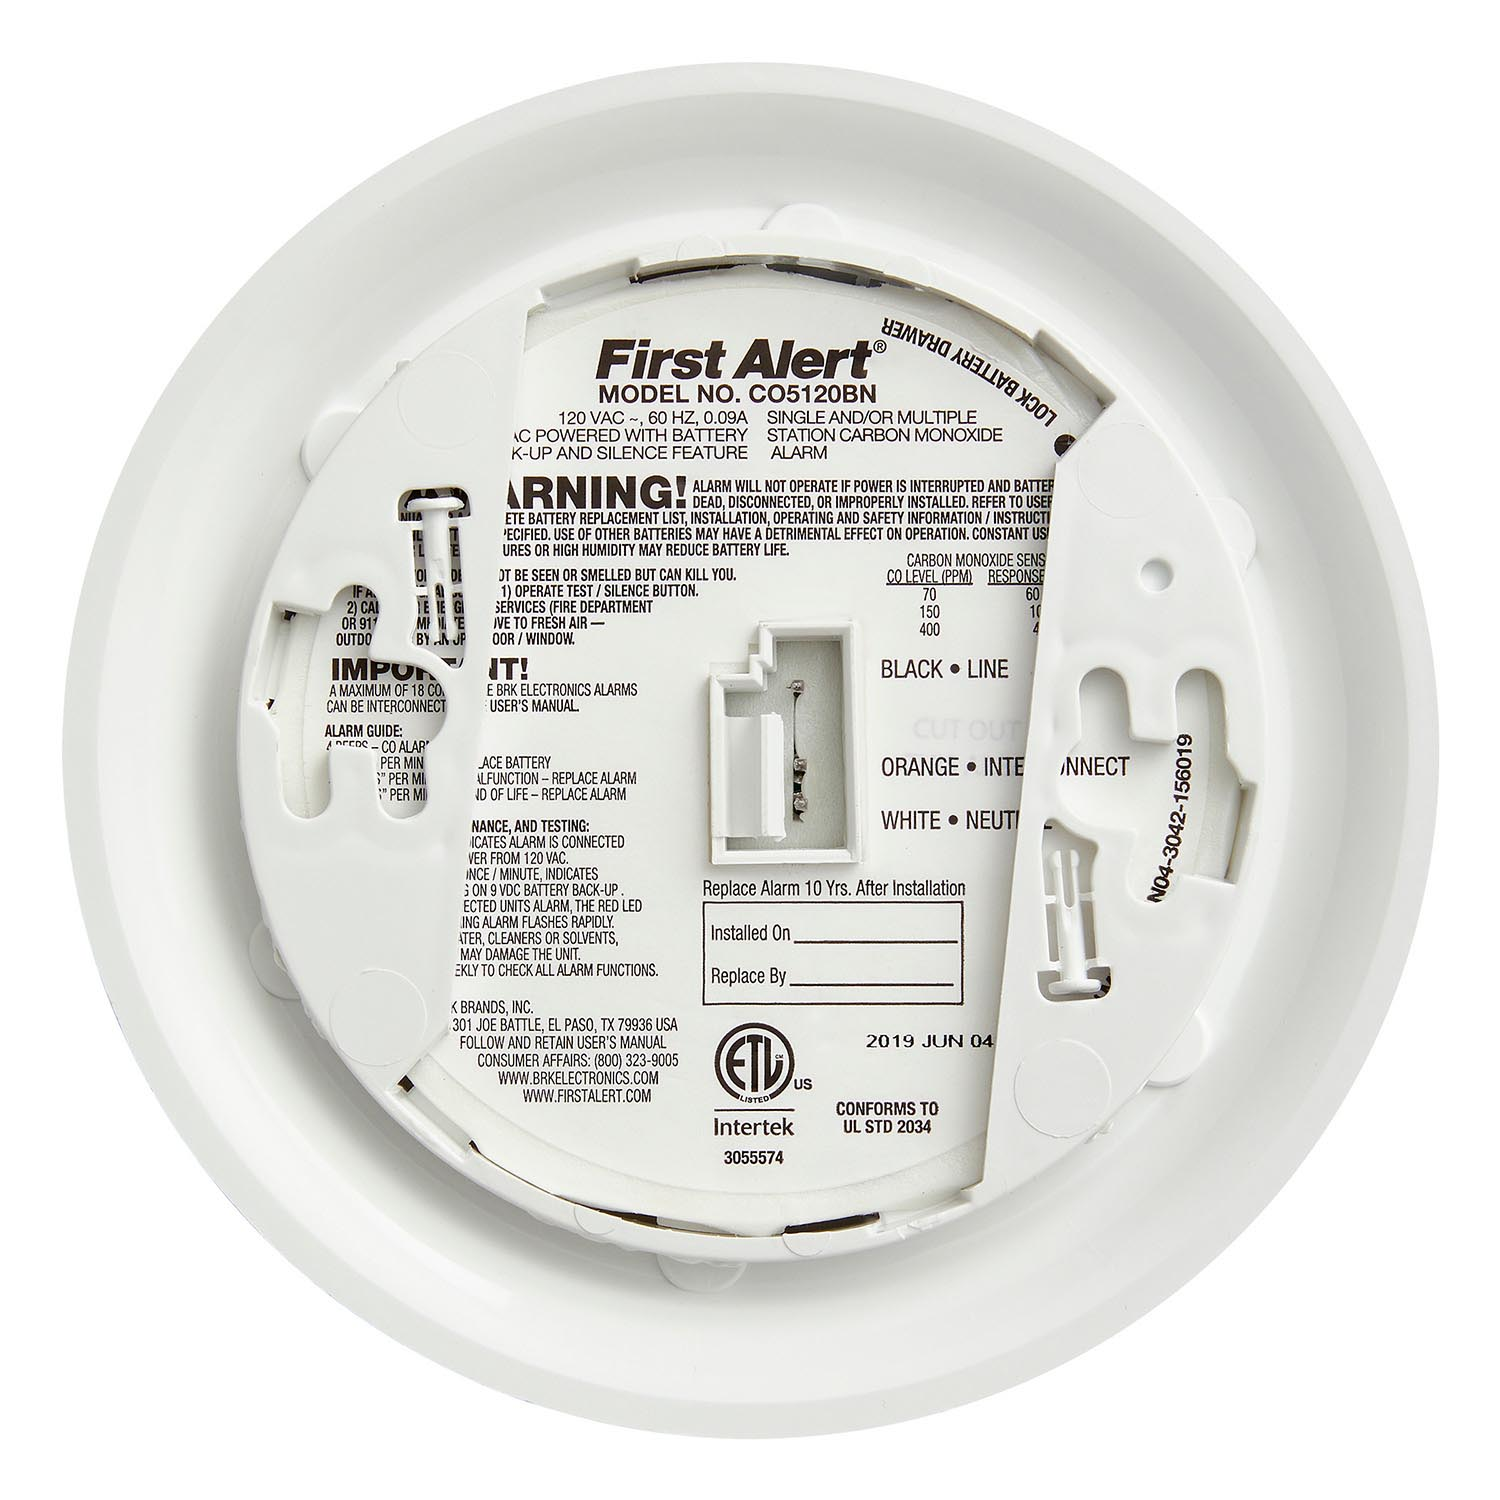 12 Pack Bundle of Hardwired Carbon Monoxide Alarm with Battery Back-up, CO5120BN